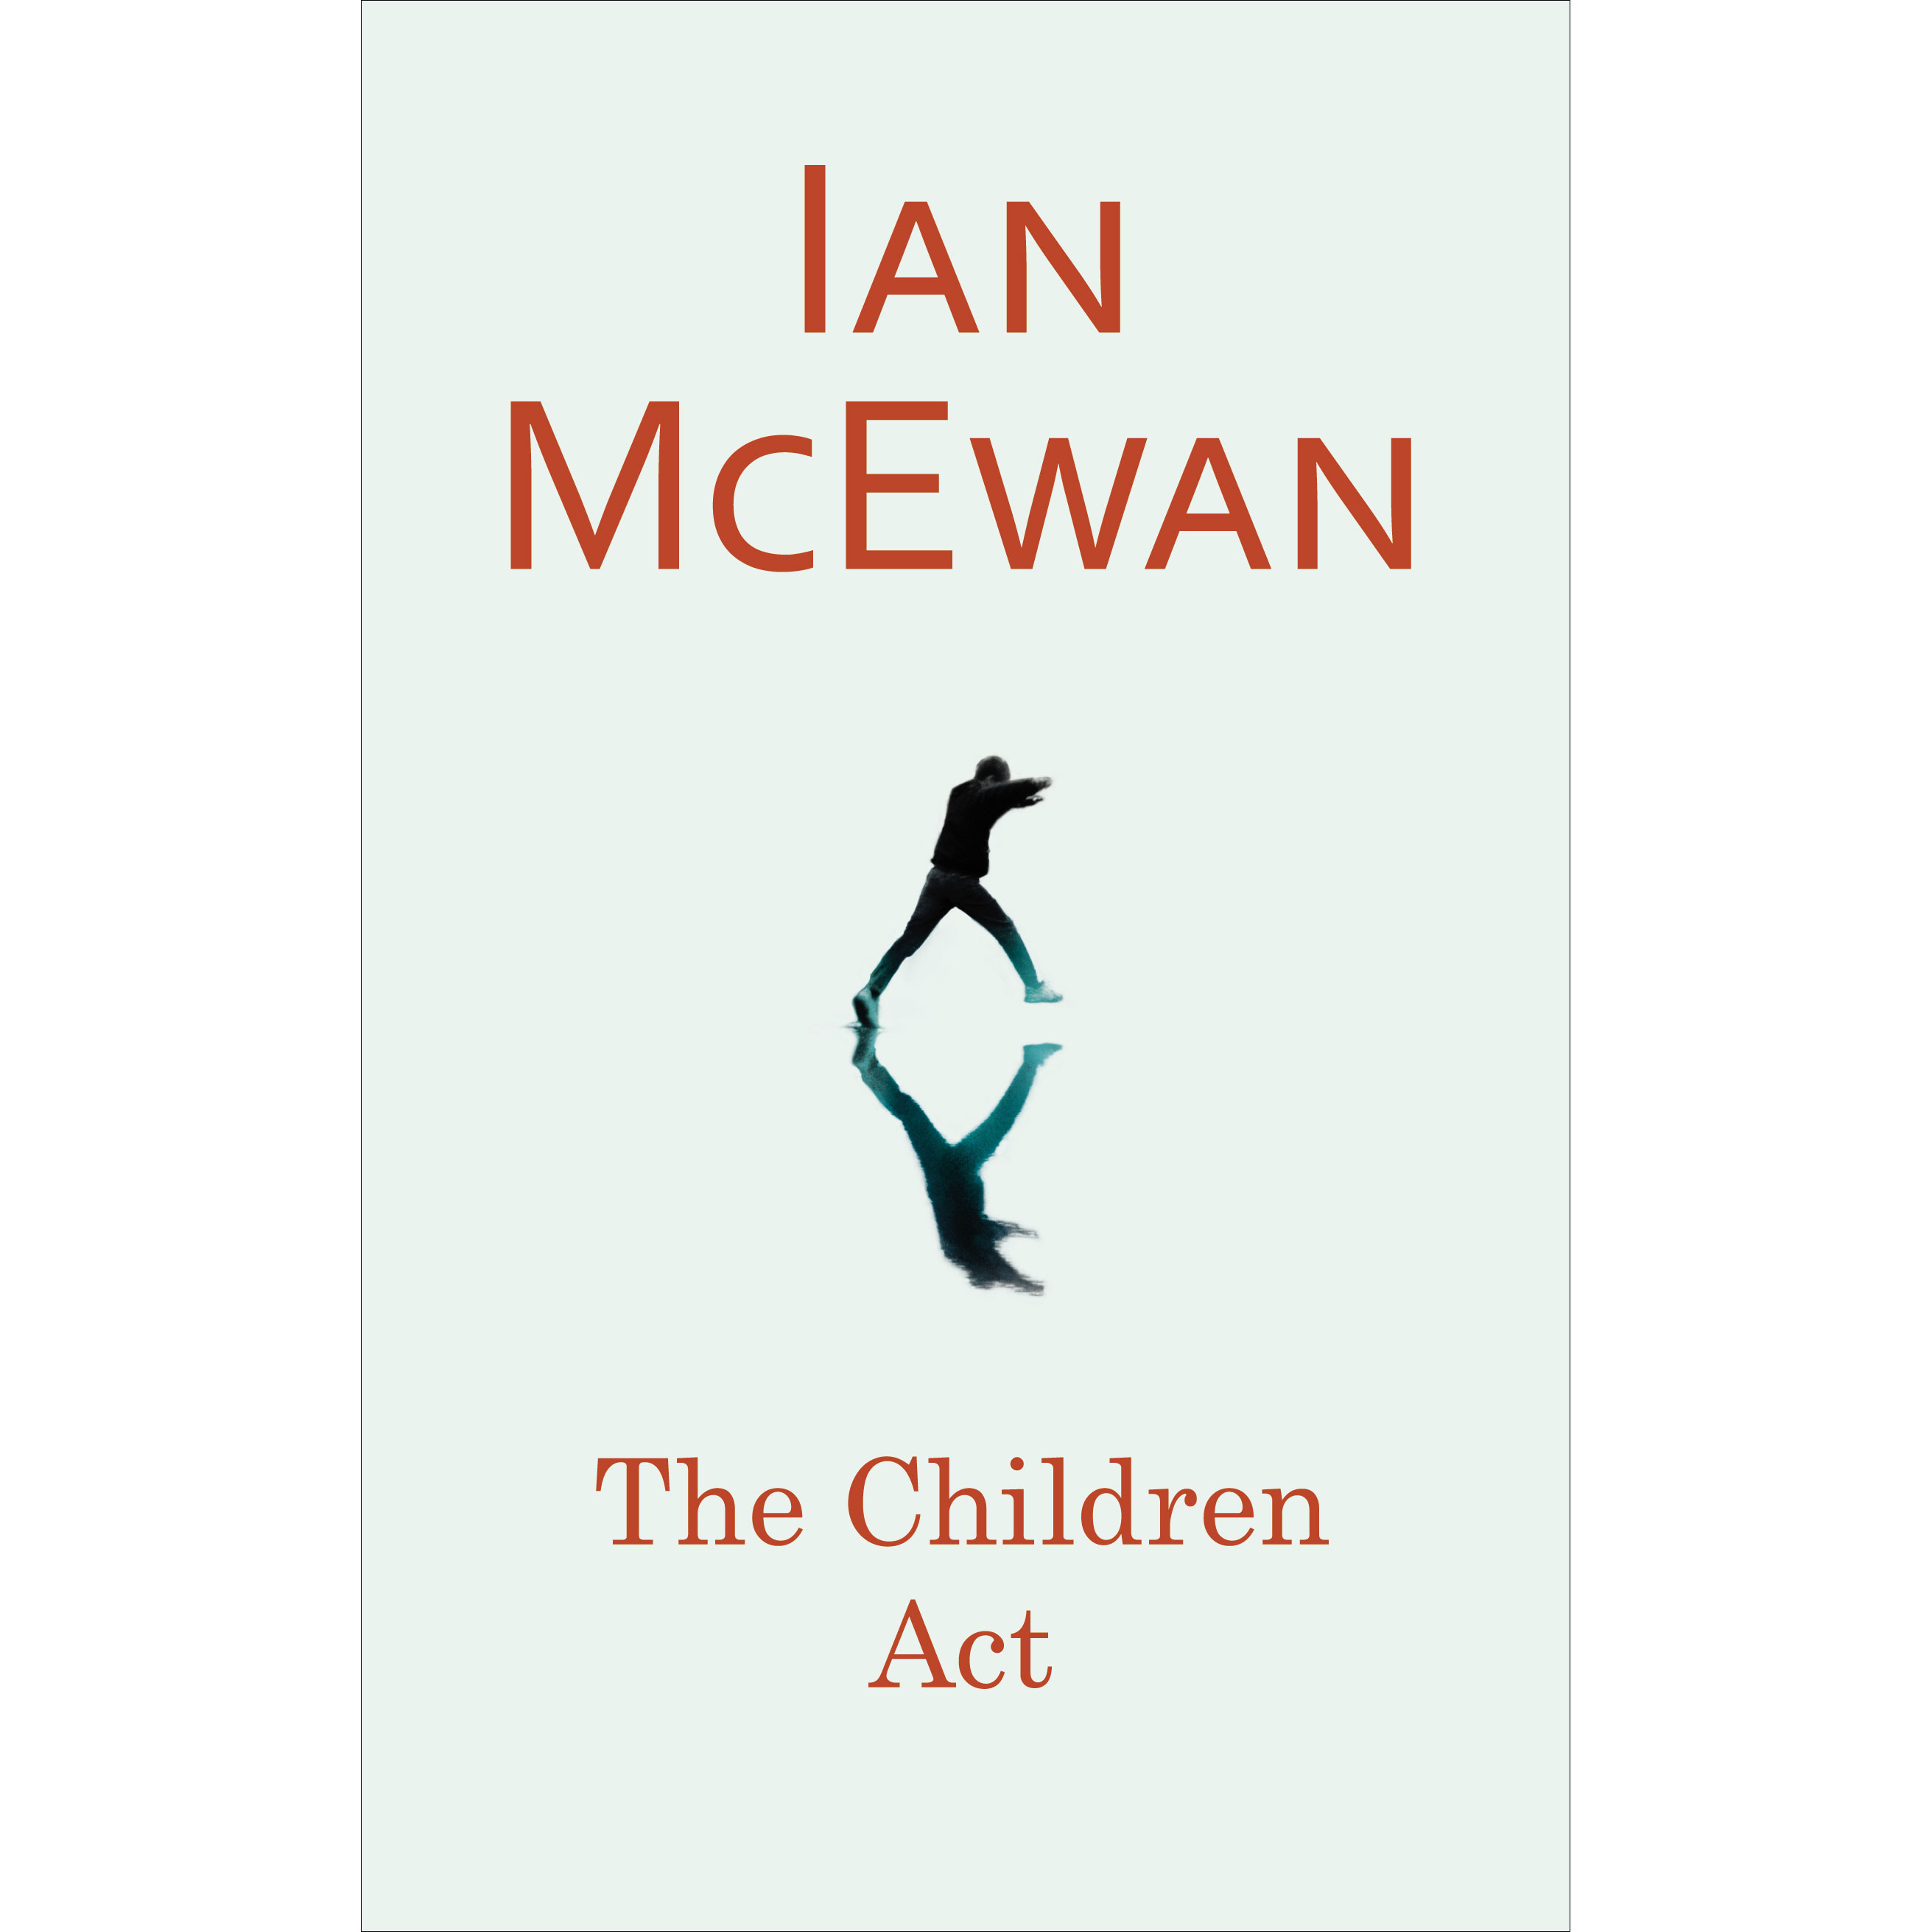 a review of a new book by ian mcewan Review: 'the children act,' by ian mcewan puts beliefs of jehovah's witnesses on trial  charles is the editor of book world his reviews appear in style every wednesday.